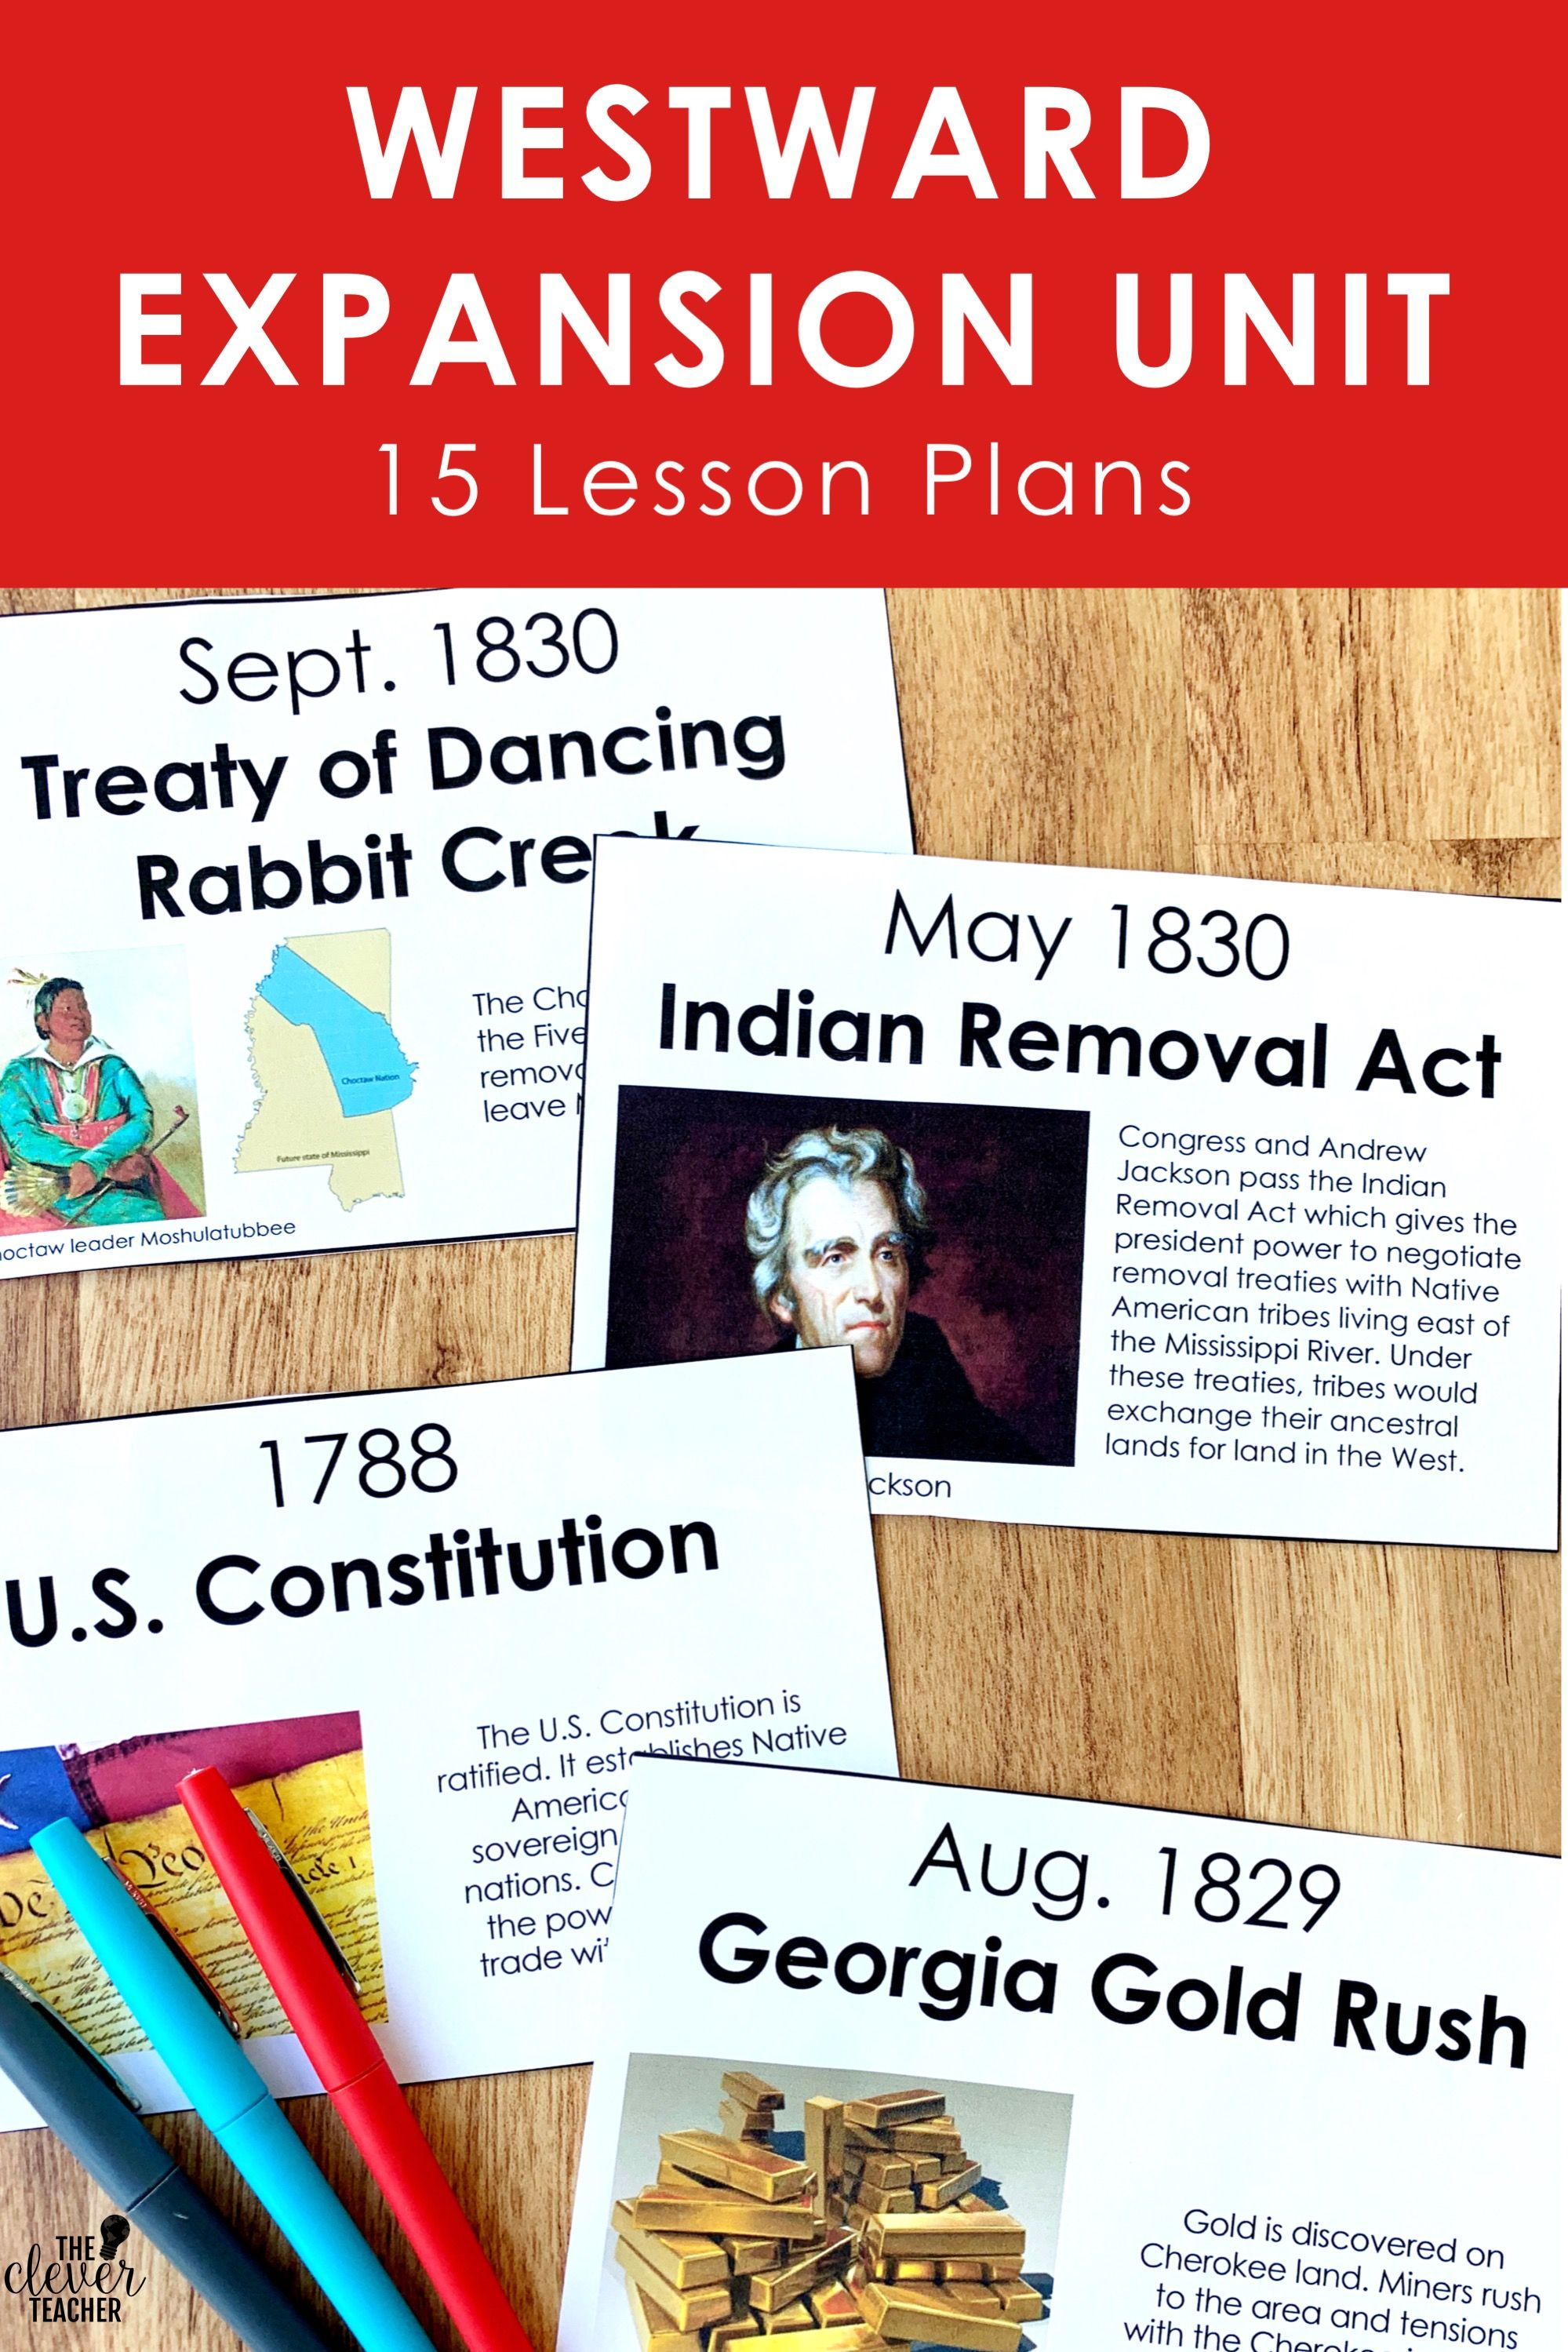 Westward Expansion Unit For 5th Grade And Middle School